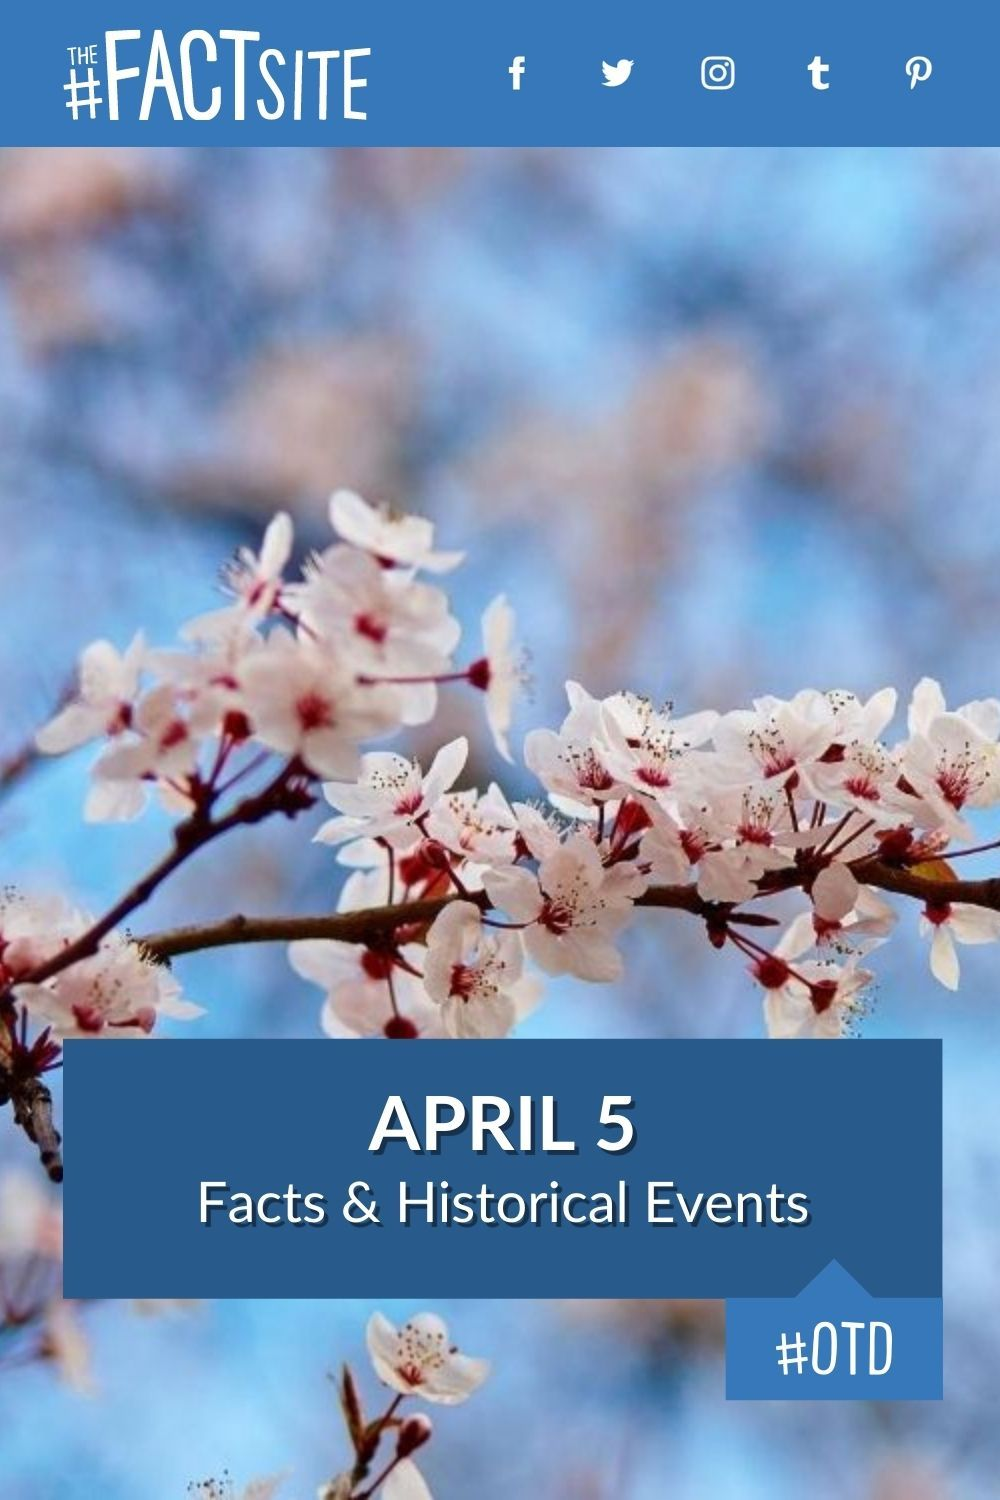 Facts & Historic Events That Happened on April 5